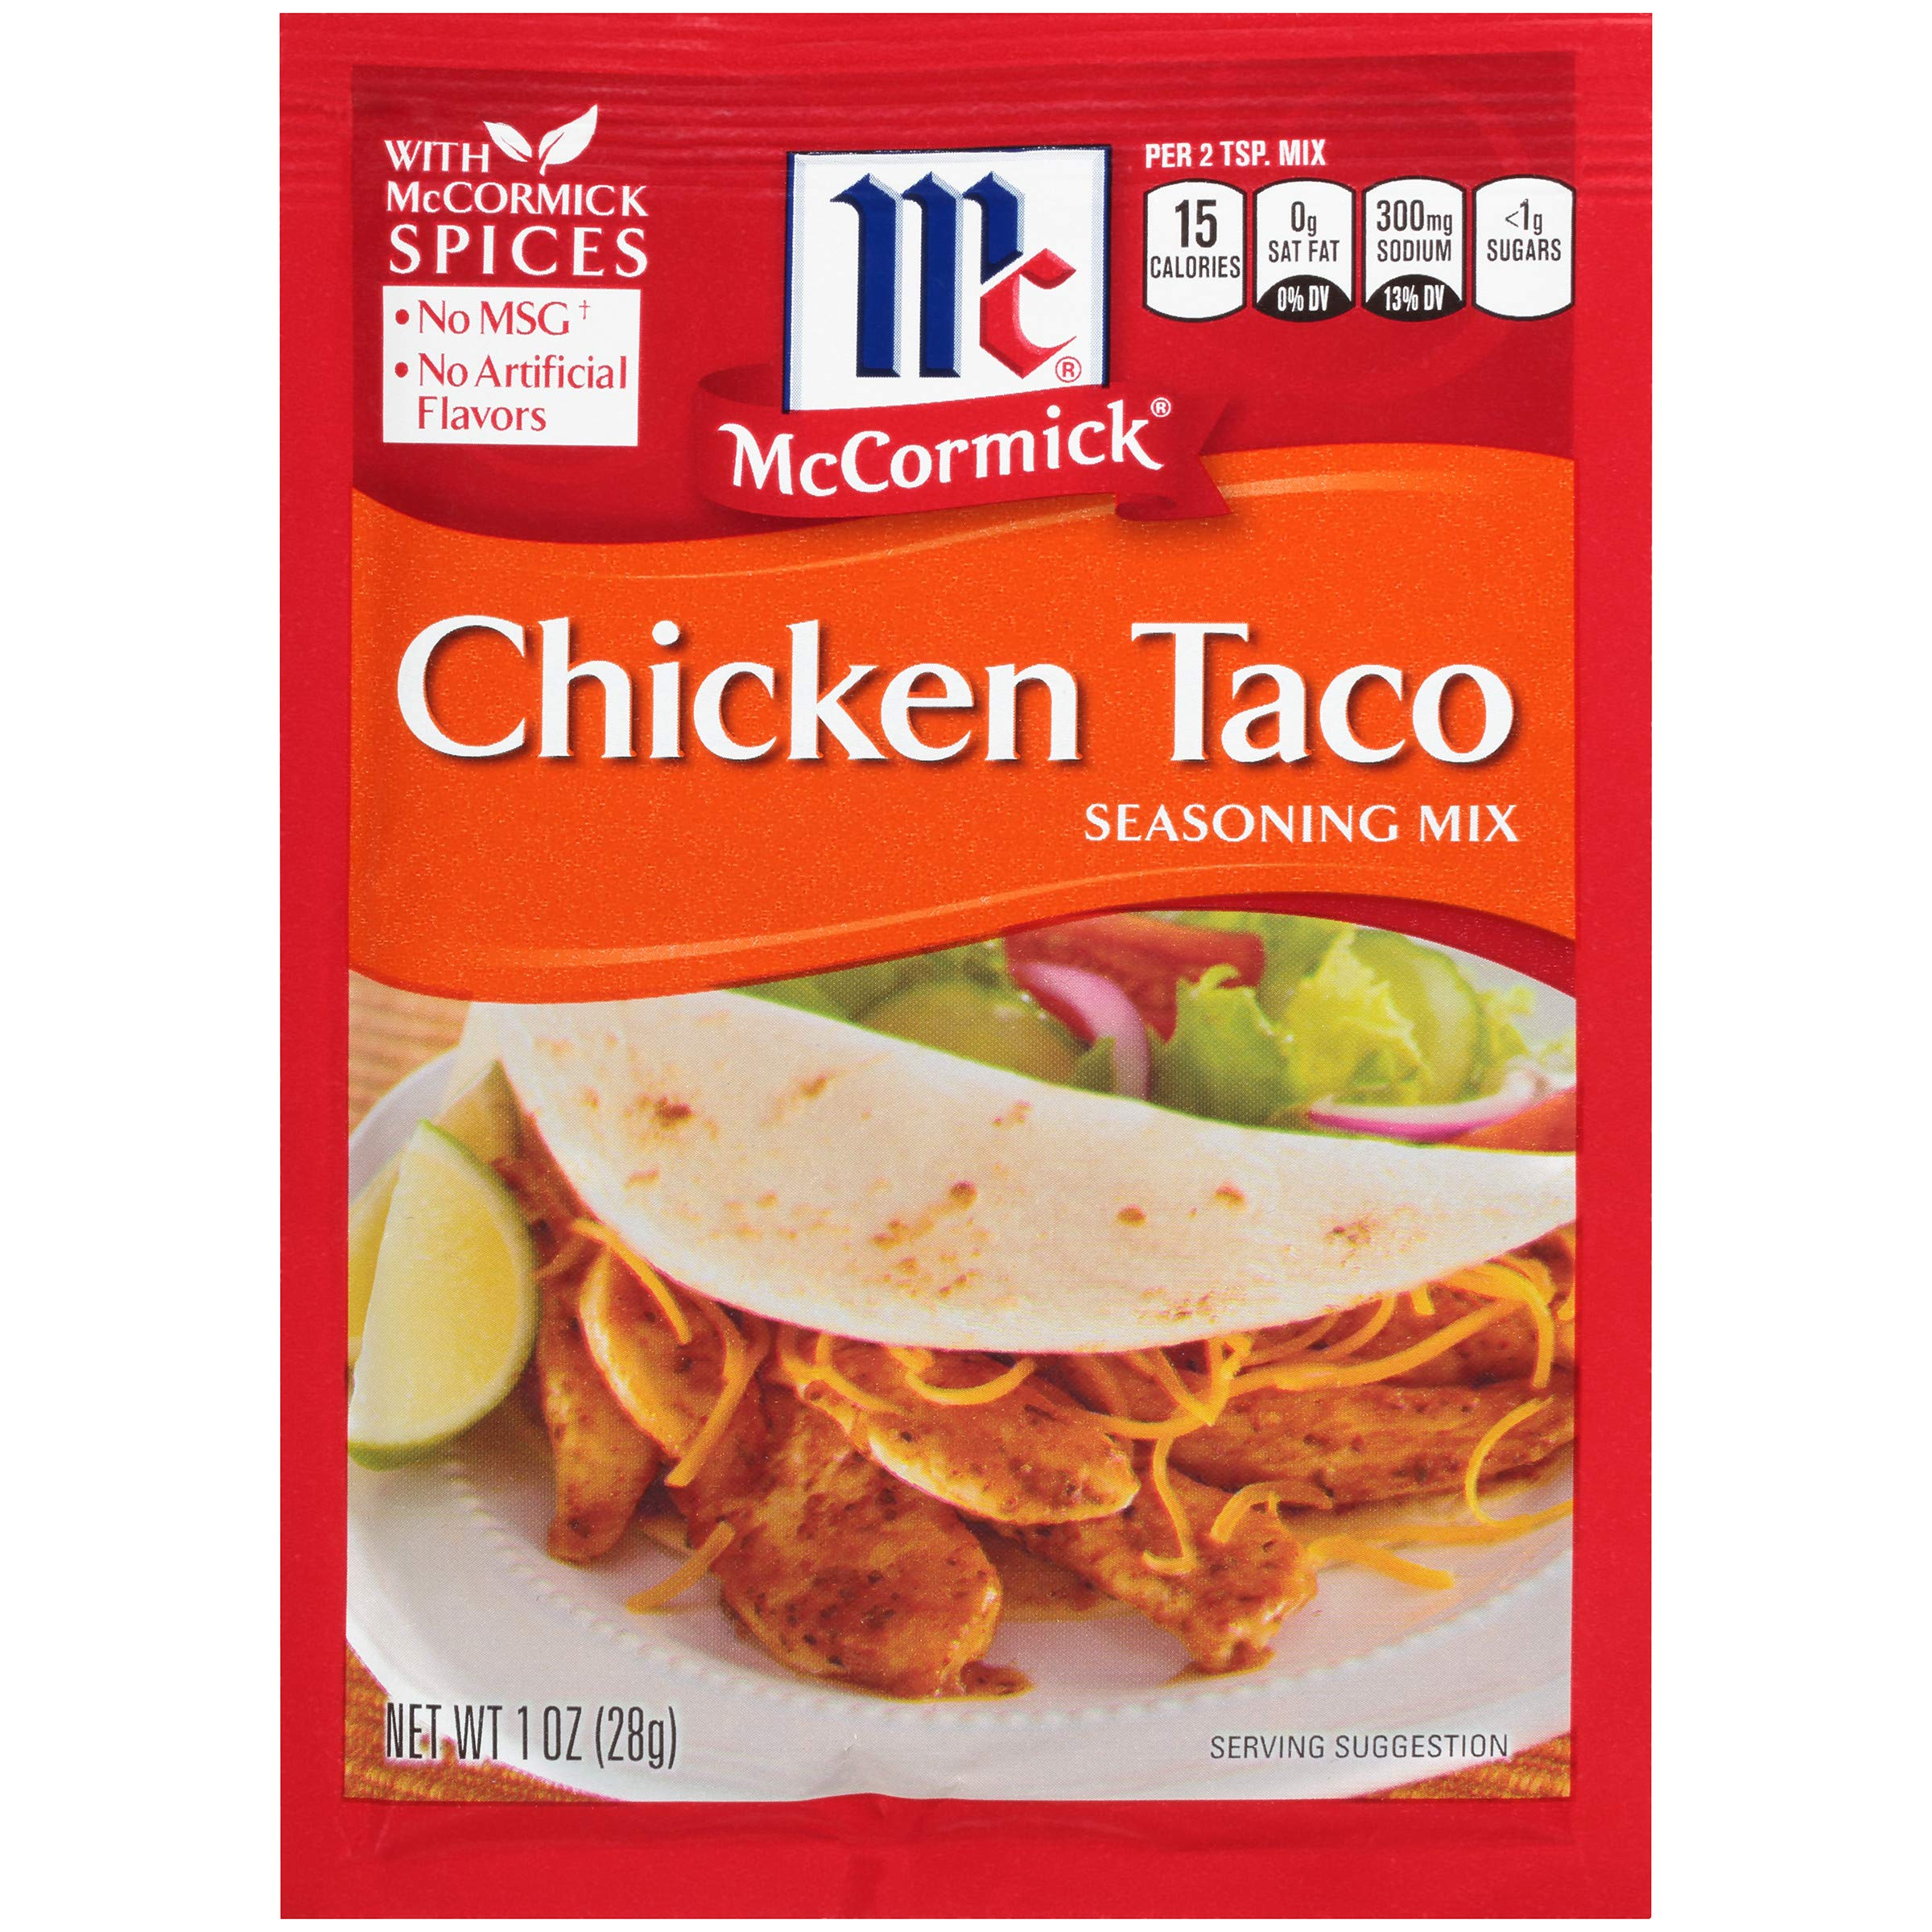 McCormick Chicken Taco Seasoning Mix, 1 oz, Create the Perfect Chicken Taco Fiesta, No MSG or Artificial Flavors, Works Great with Beef, Turkey, Beans and Veggies Too!